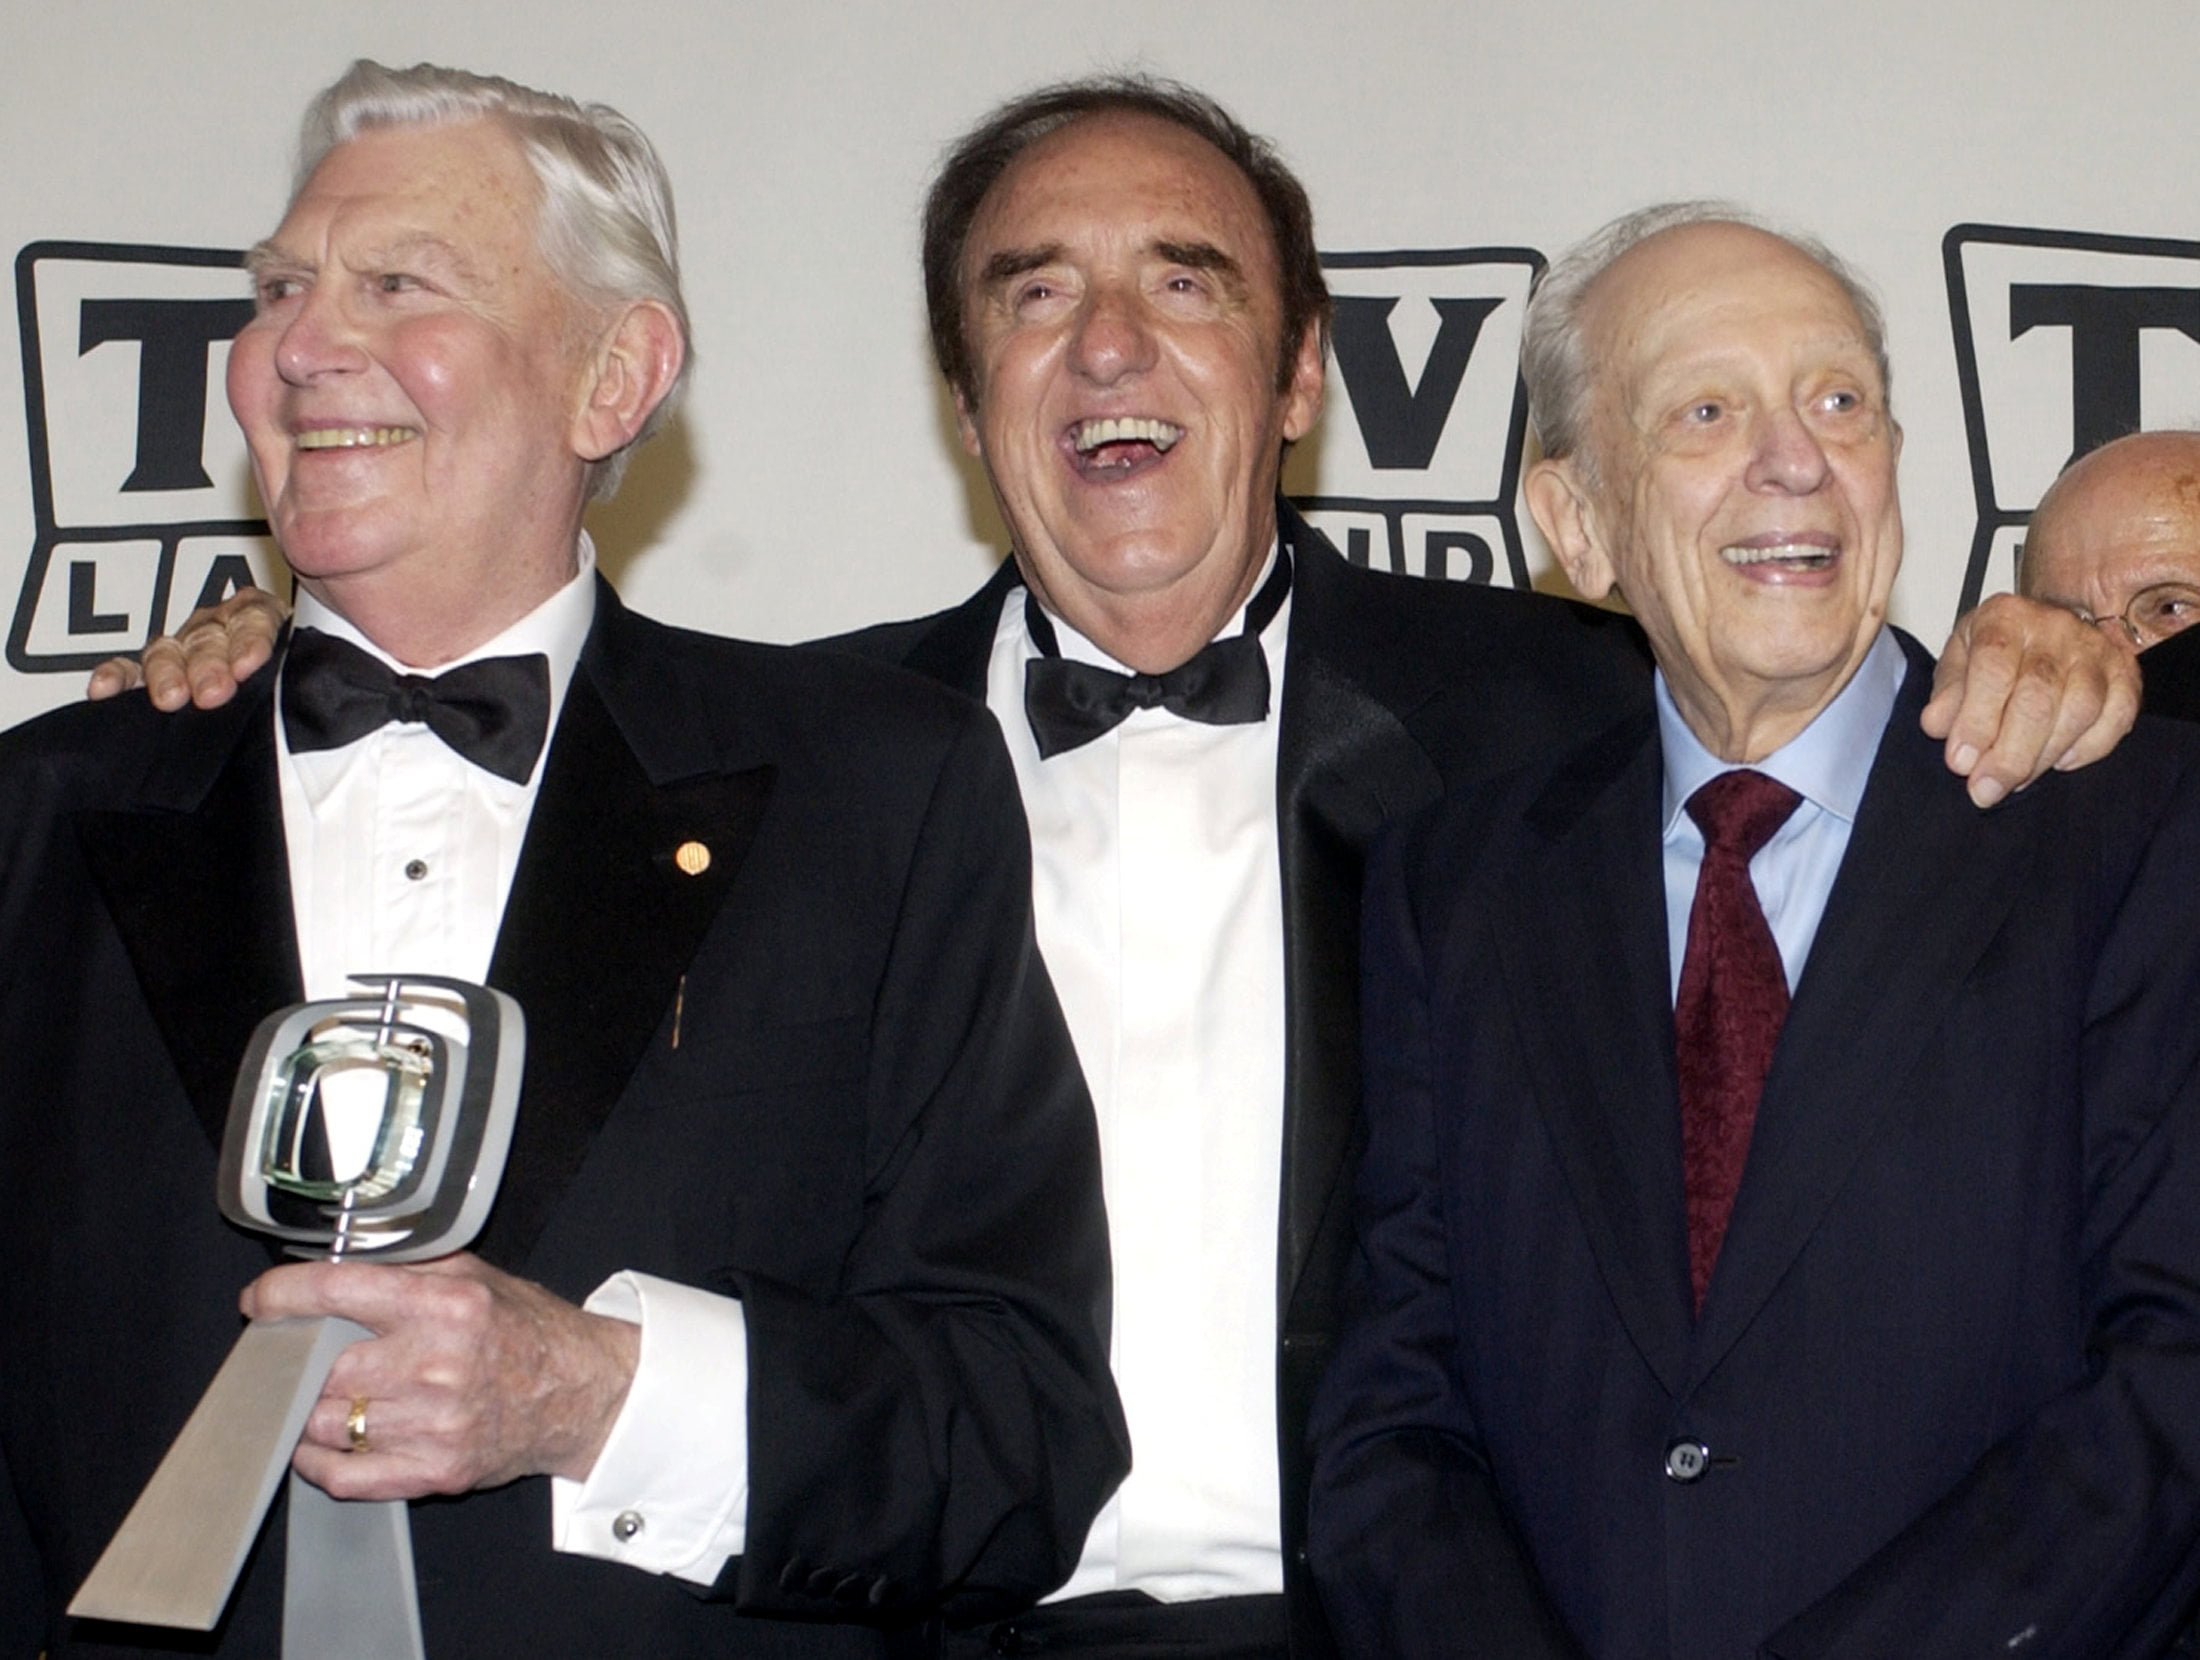 Actor Jim Nabors Tv S Gomer Pyle Of 1960s Dies At 87 The North State Journal Character gomer pyle, passed away at his home in honolulu, hawaii. actor jim nabors tv s gomer pyle of